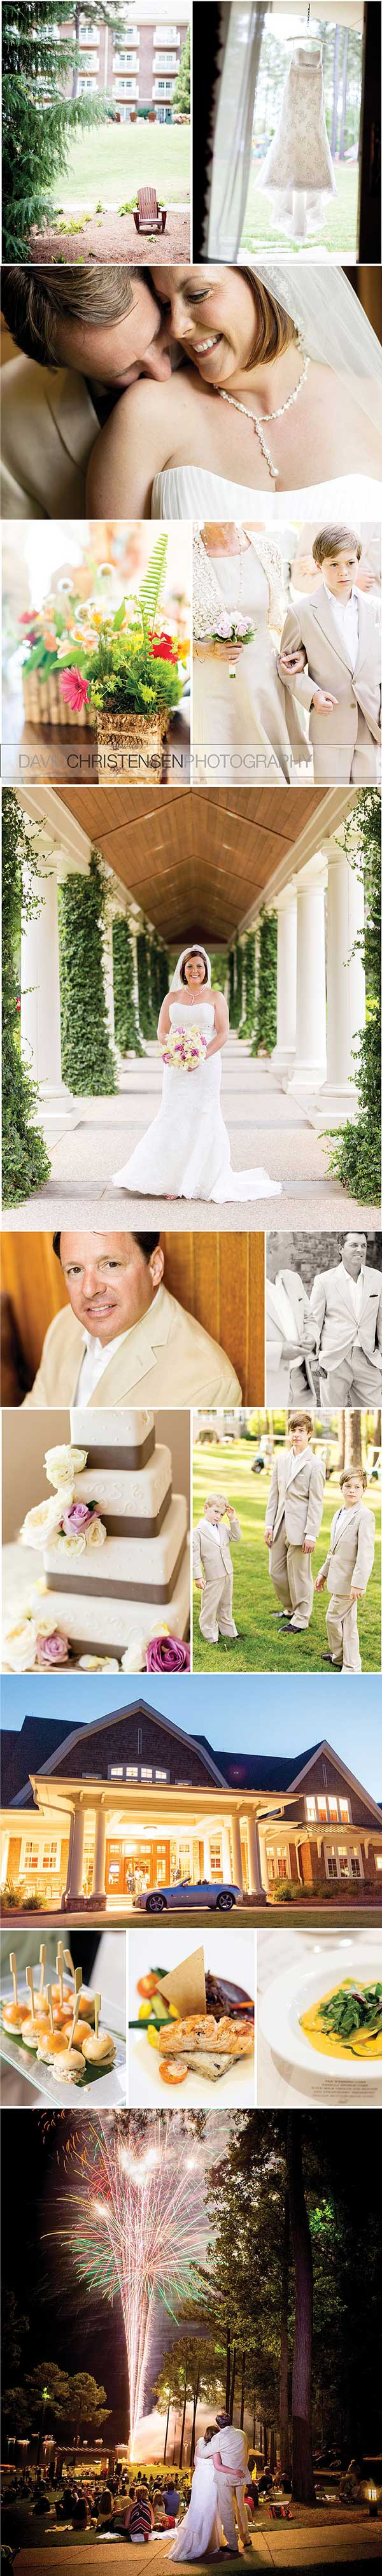 Ritz Carlton Reynolds Plantation Wedding